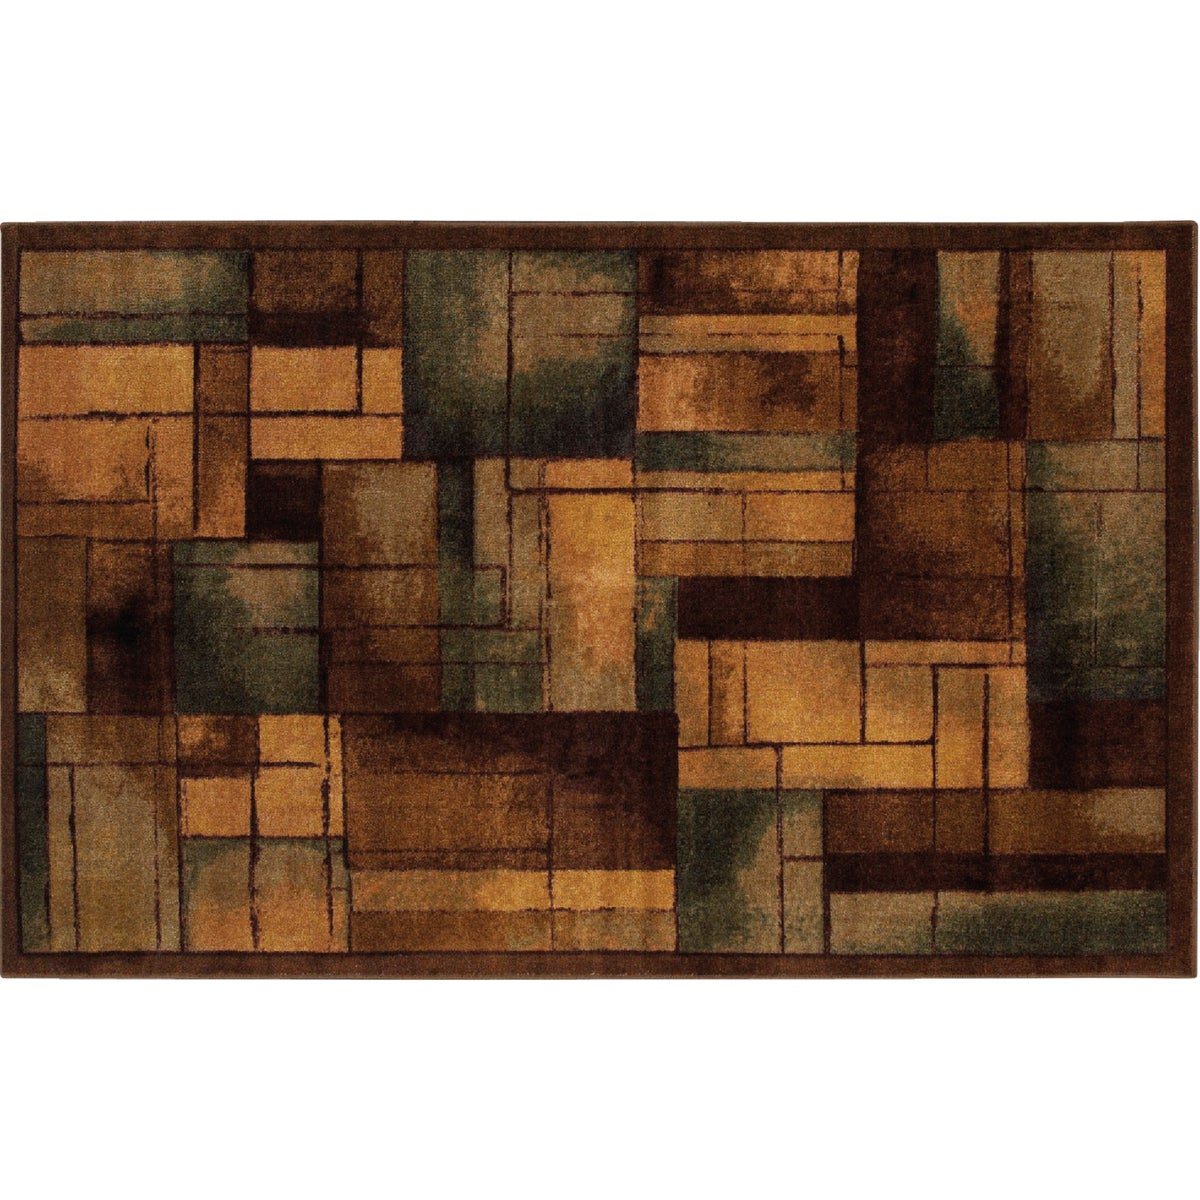 20X34 ROBY PRINT RUG